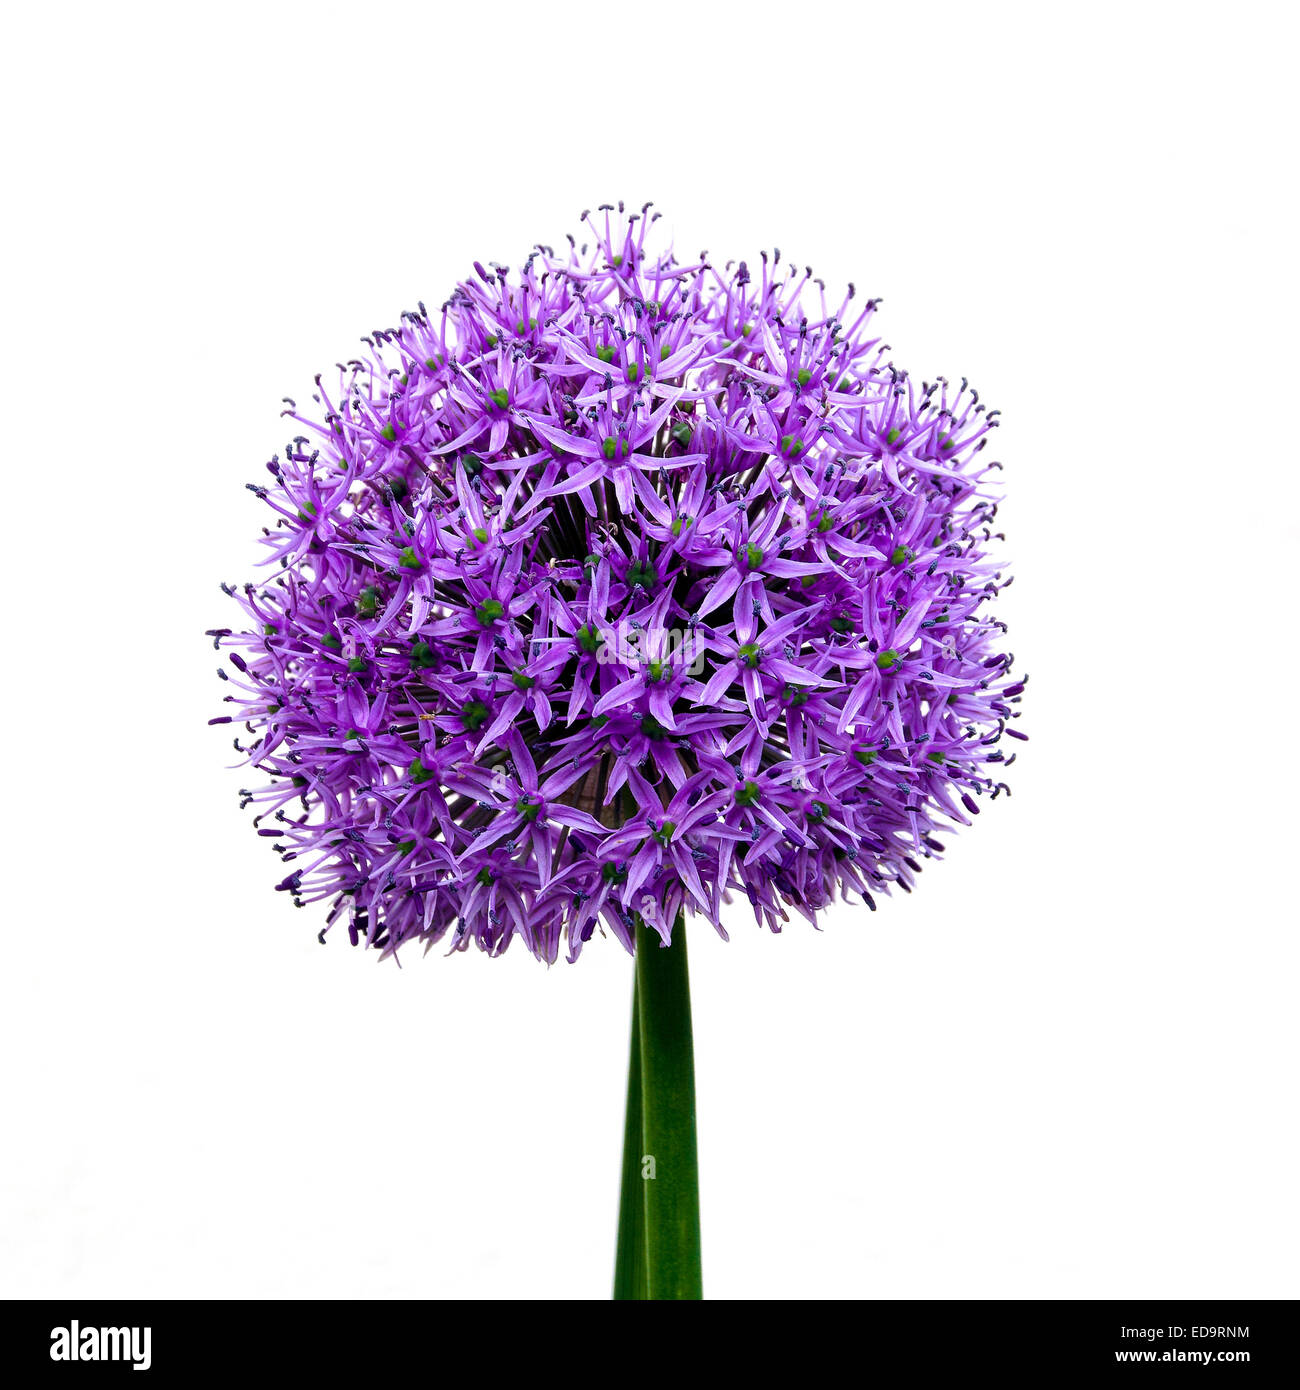 Plante Allium against white background Photo Stock